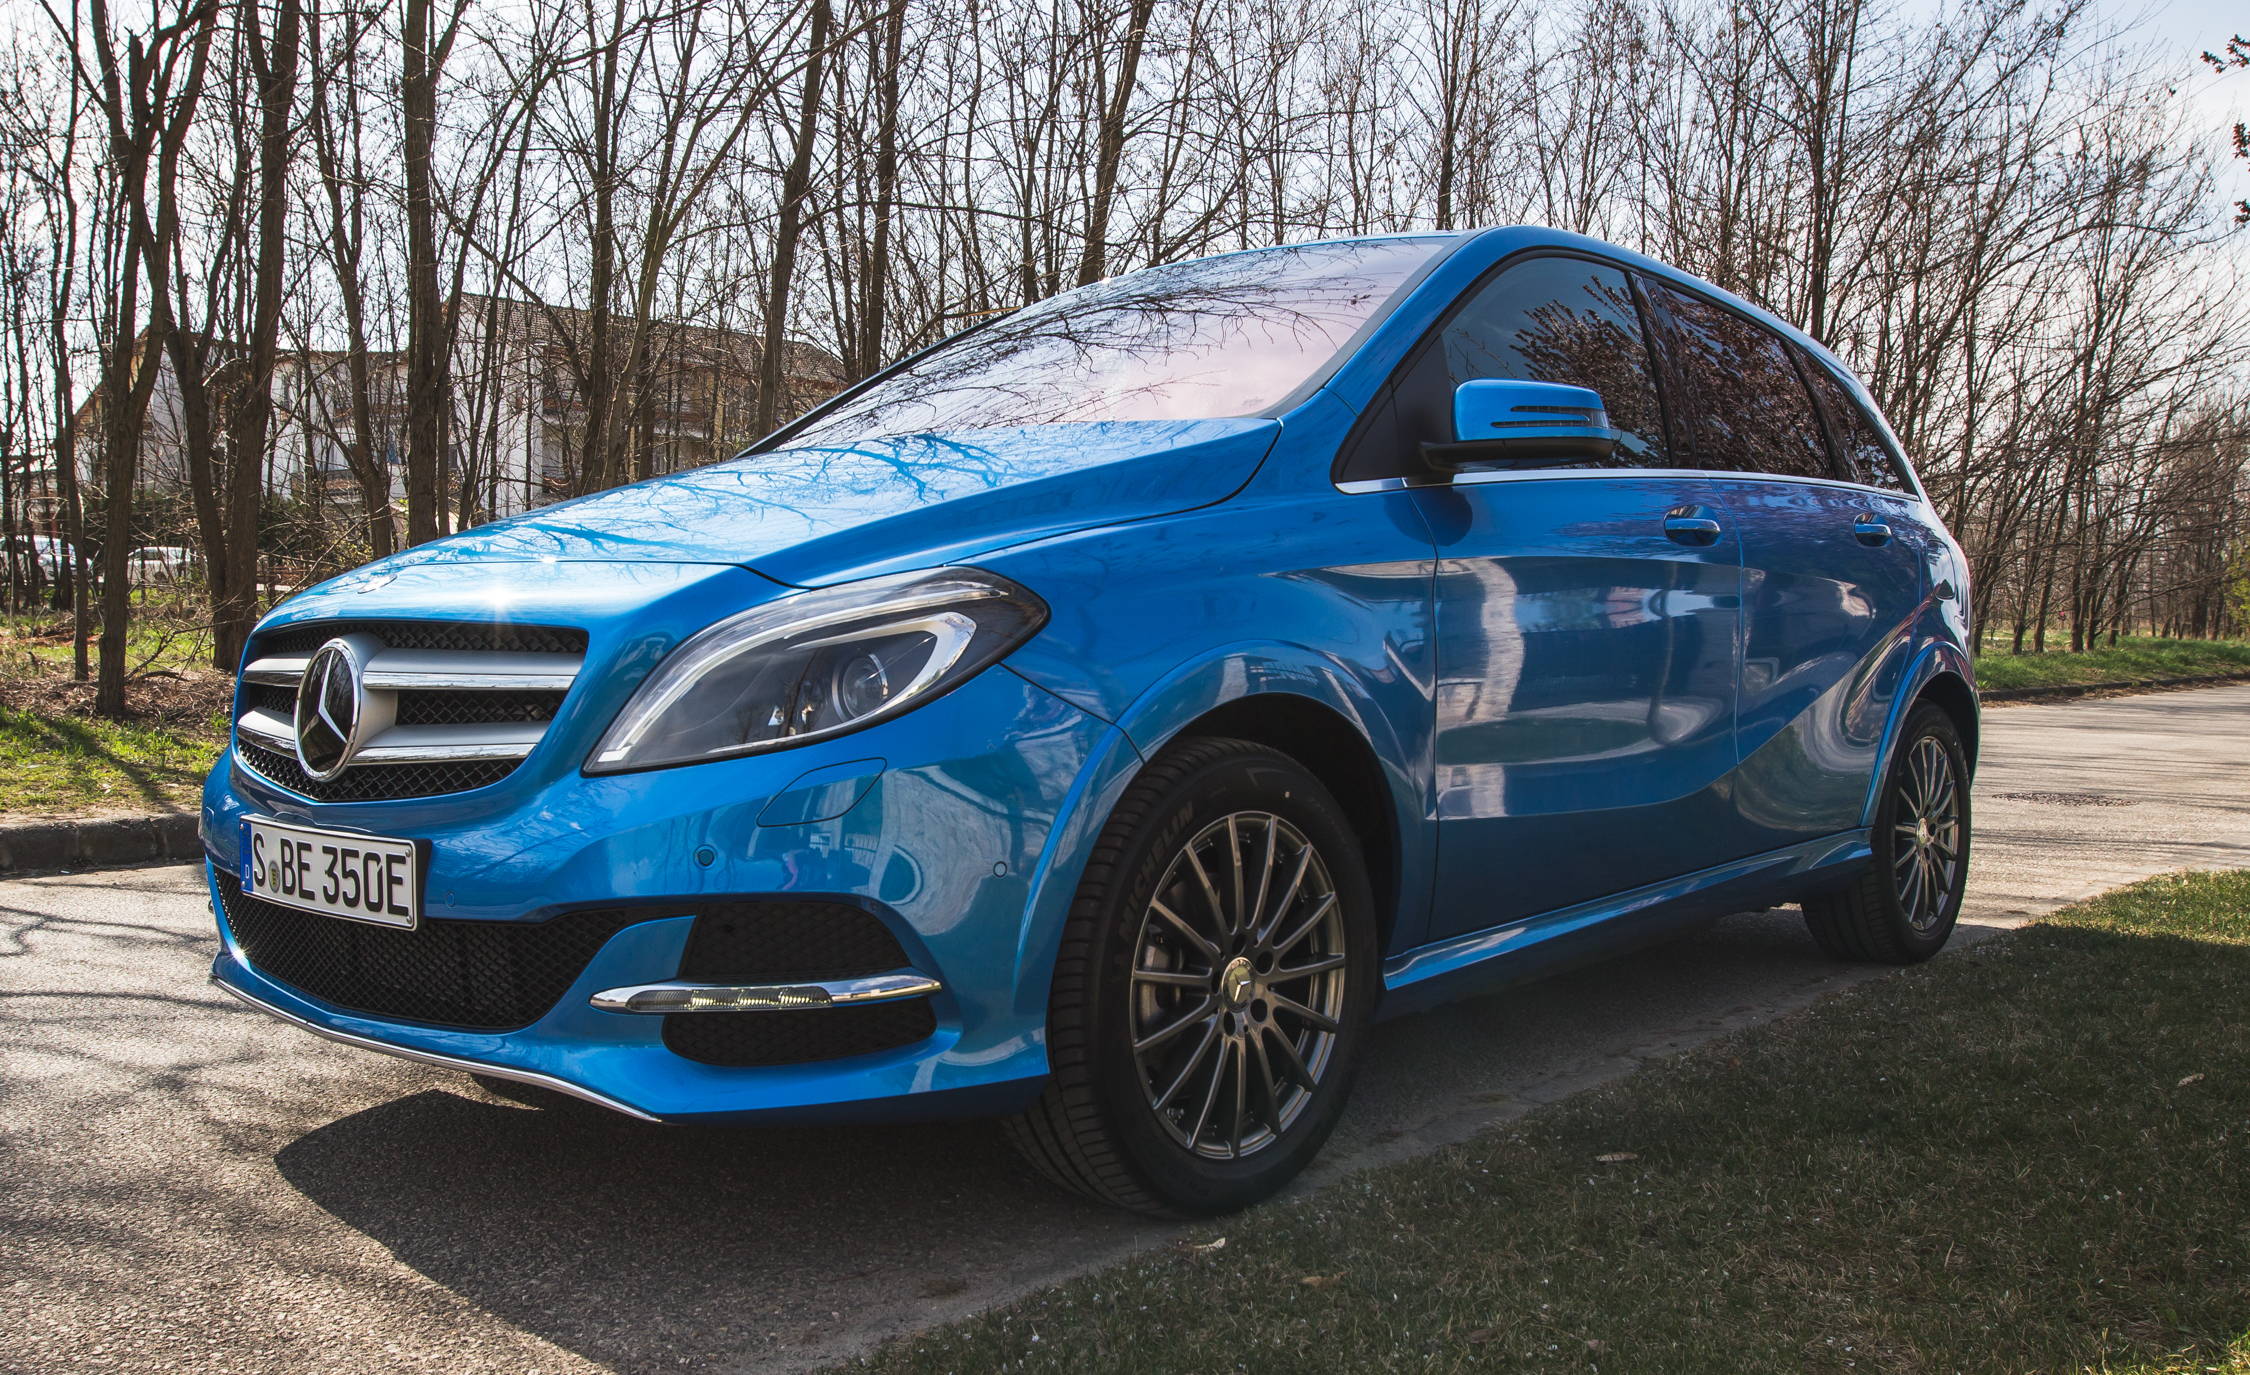 2017 Mercedes Benz B Class EV Exterior View Front And Side (Photo 23 of 24)